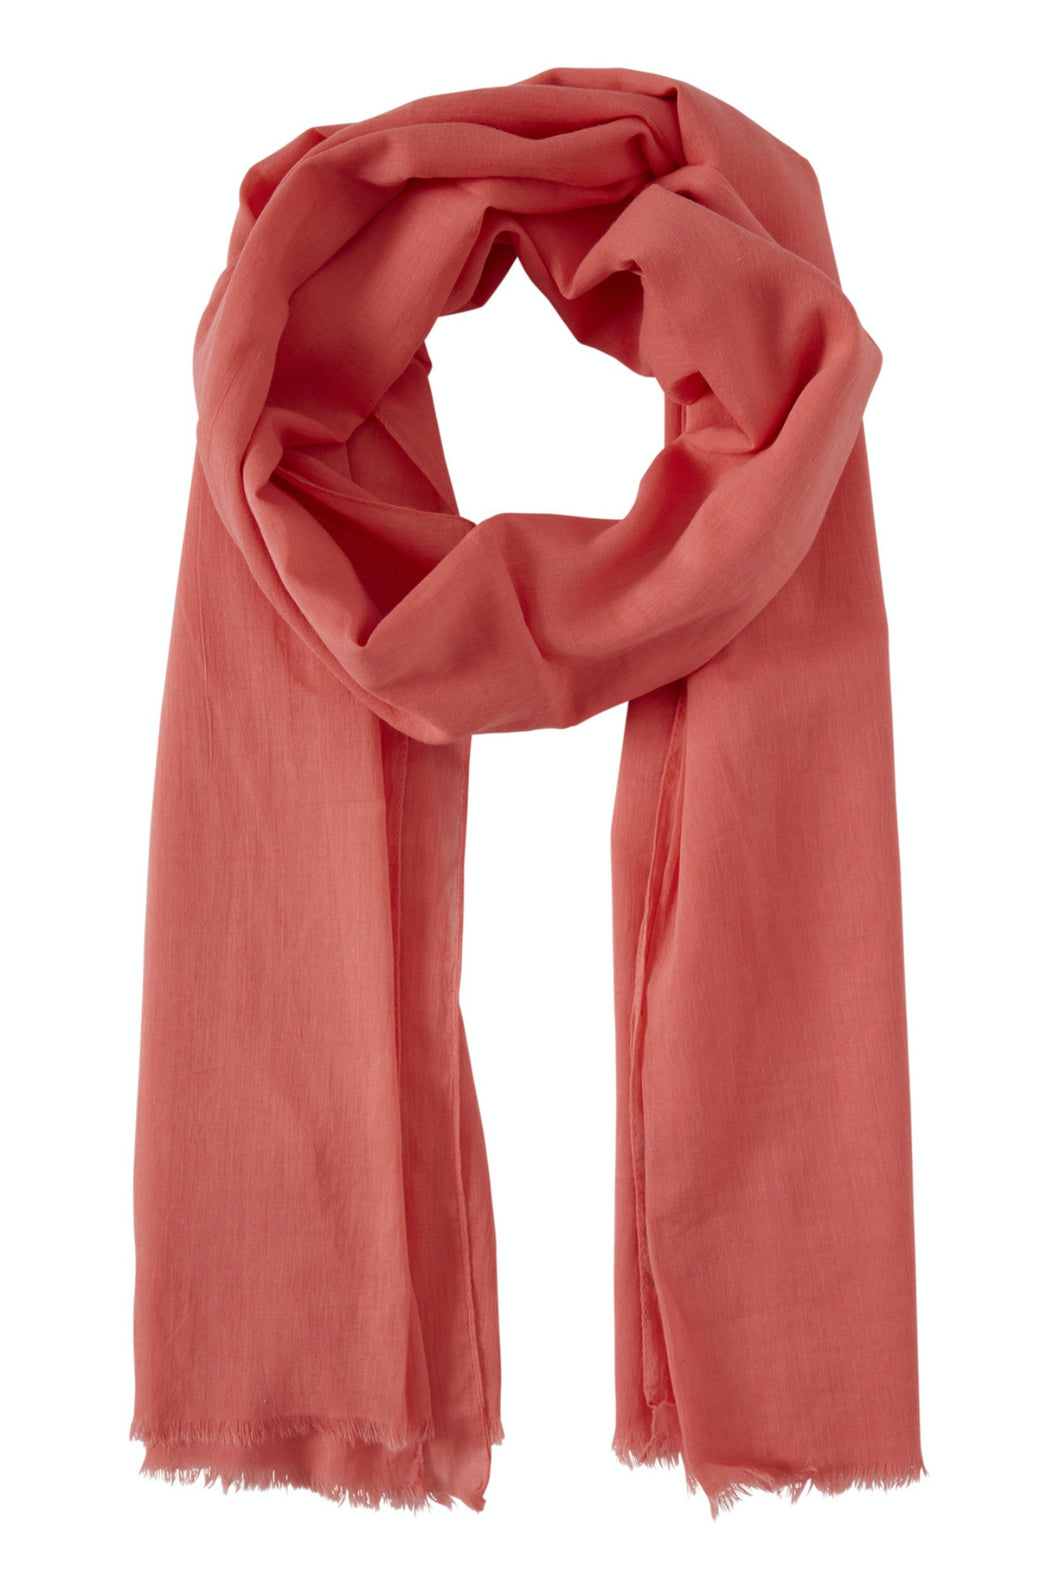 Faipzally Scarf - Pink Lemonade / One Size - entre2016